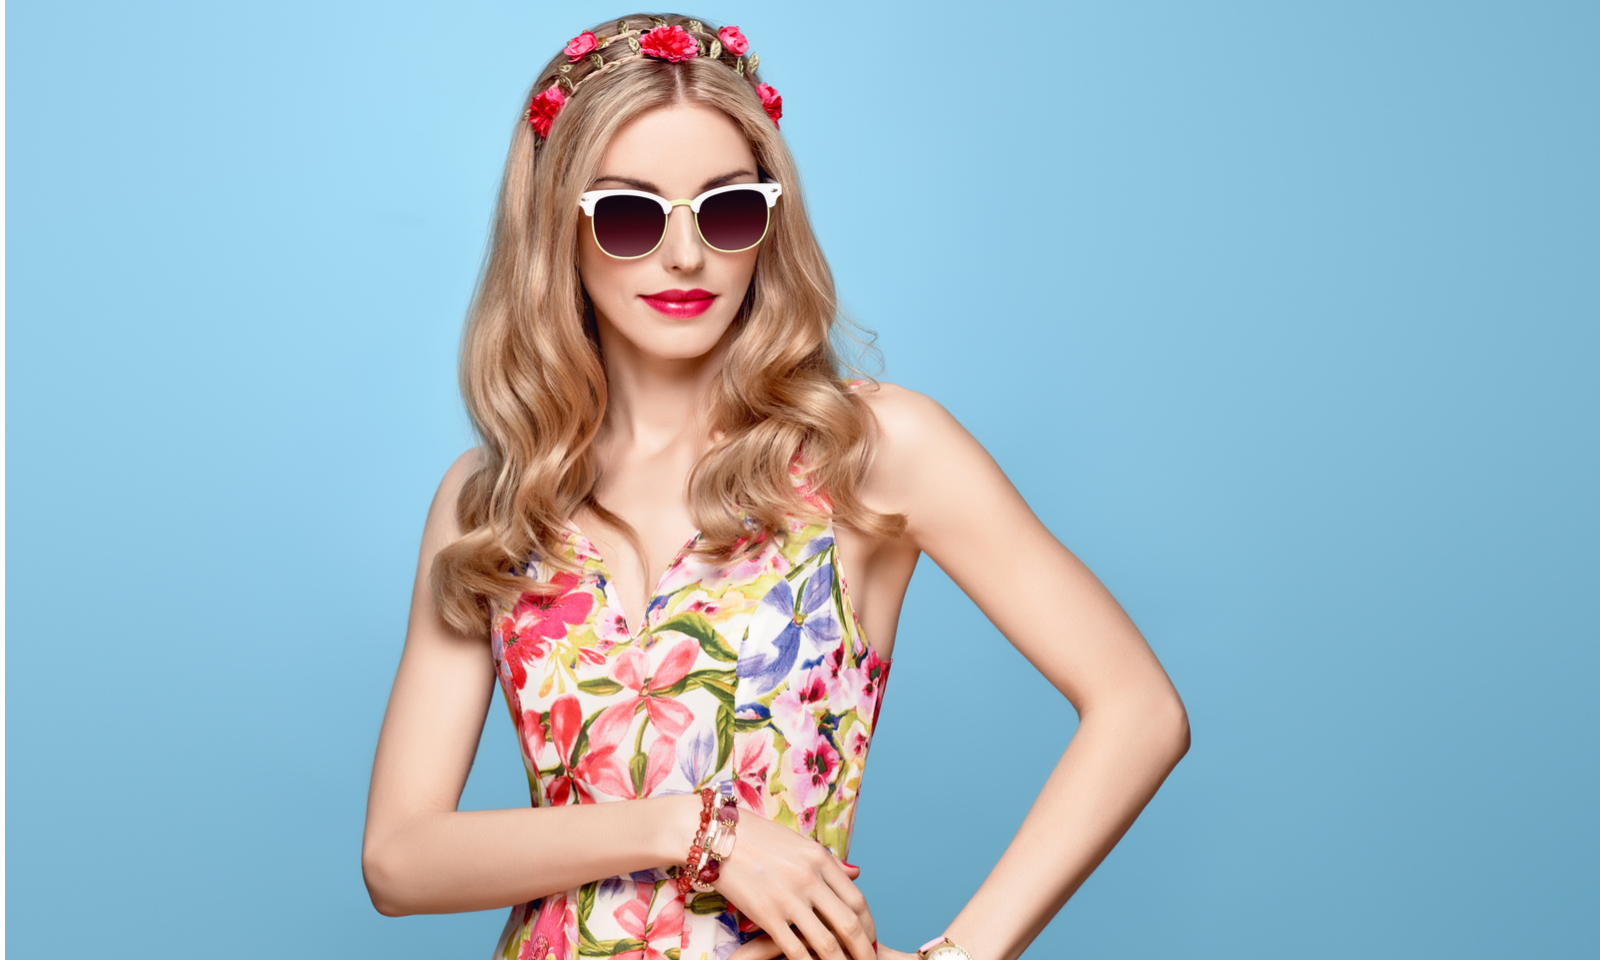 60s Fashion From The Miniskirt To The British Invasion The Styles You Still Wear Today Viva